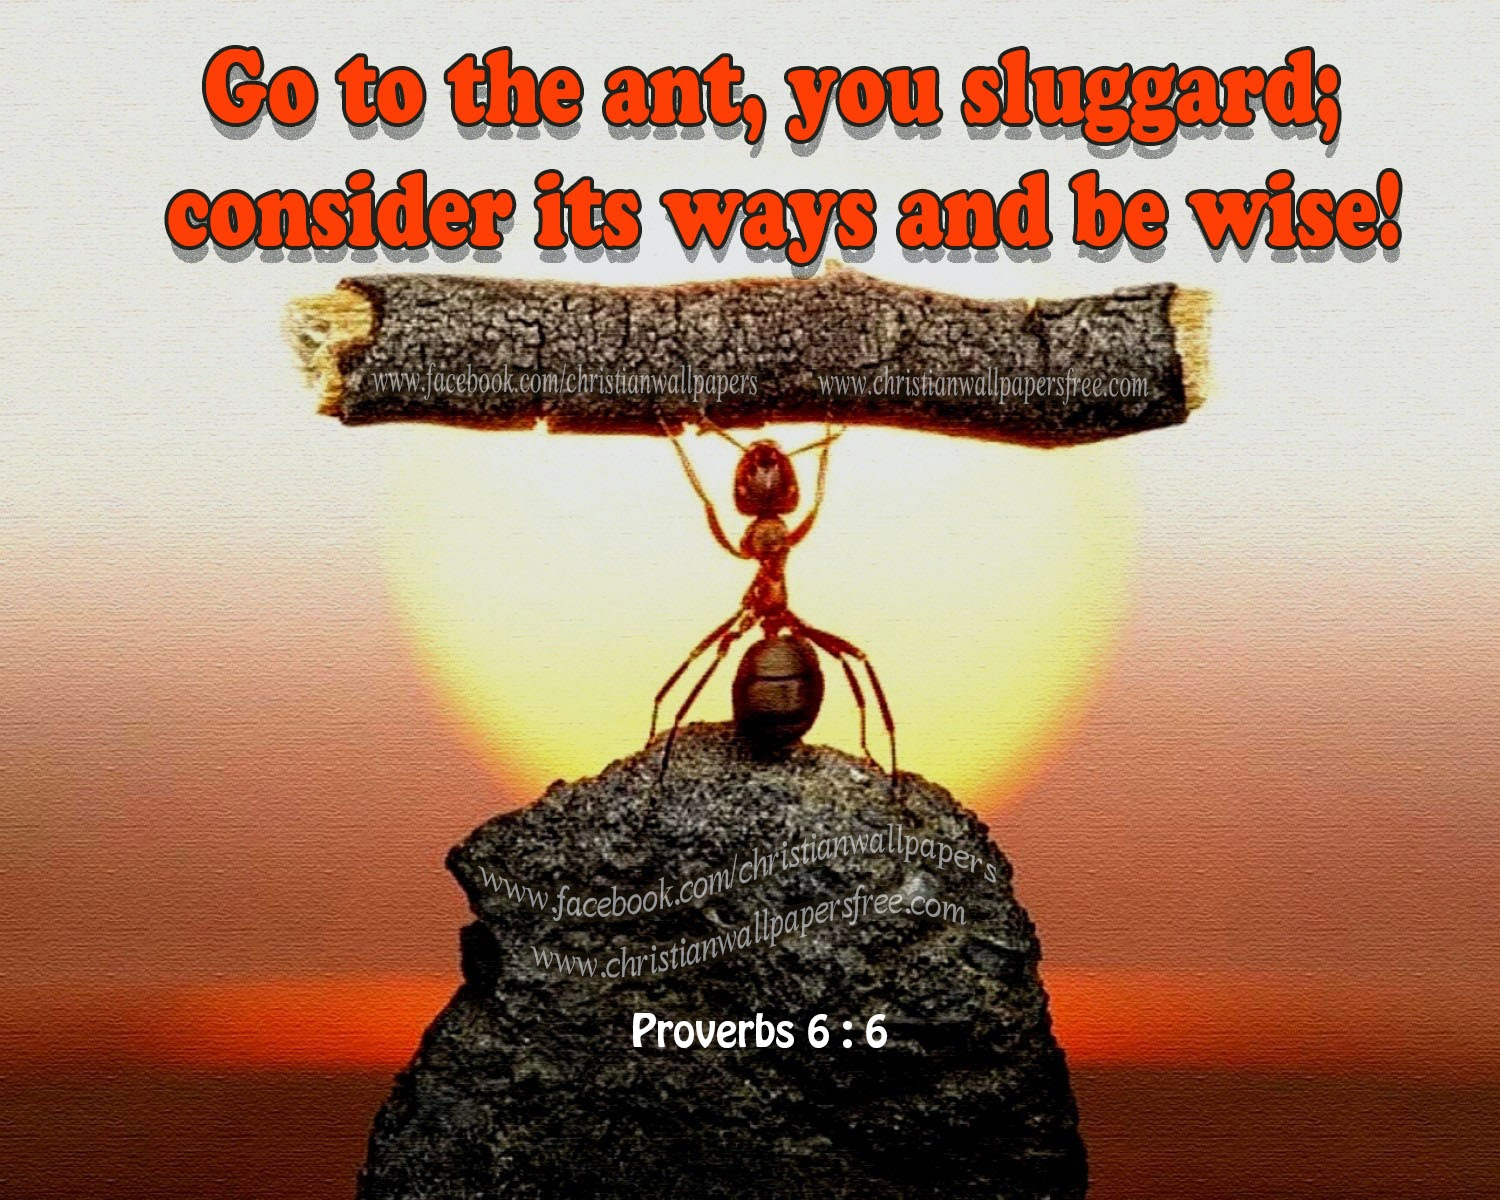 Brock family Bible study: Proverbs: The Ant and the Sluggard